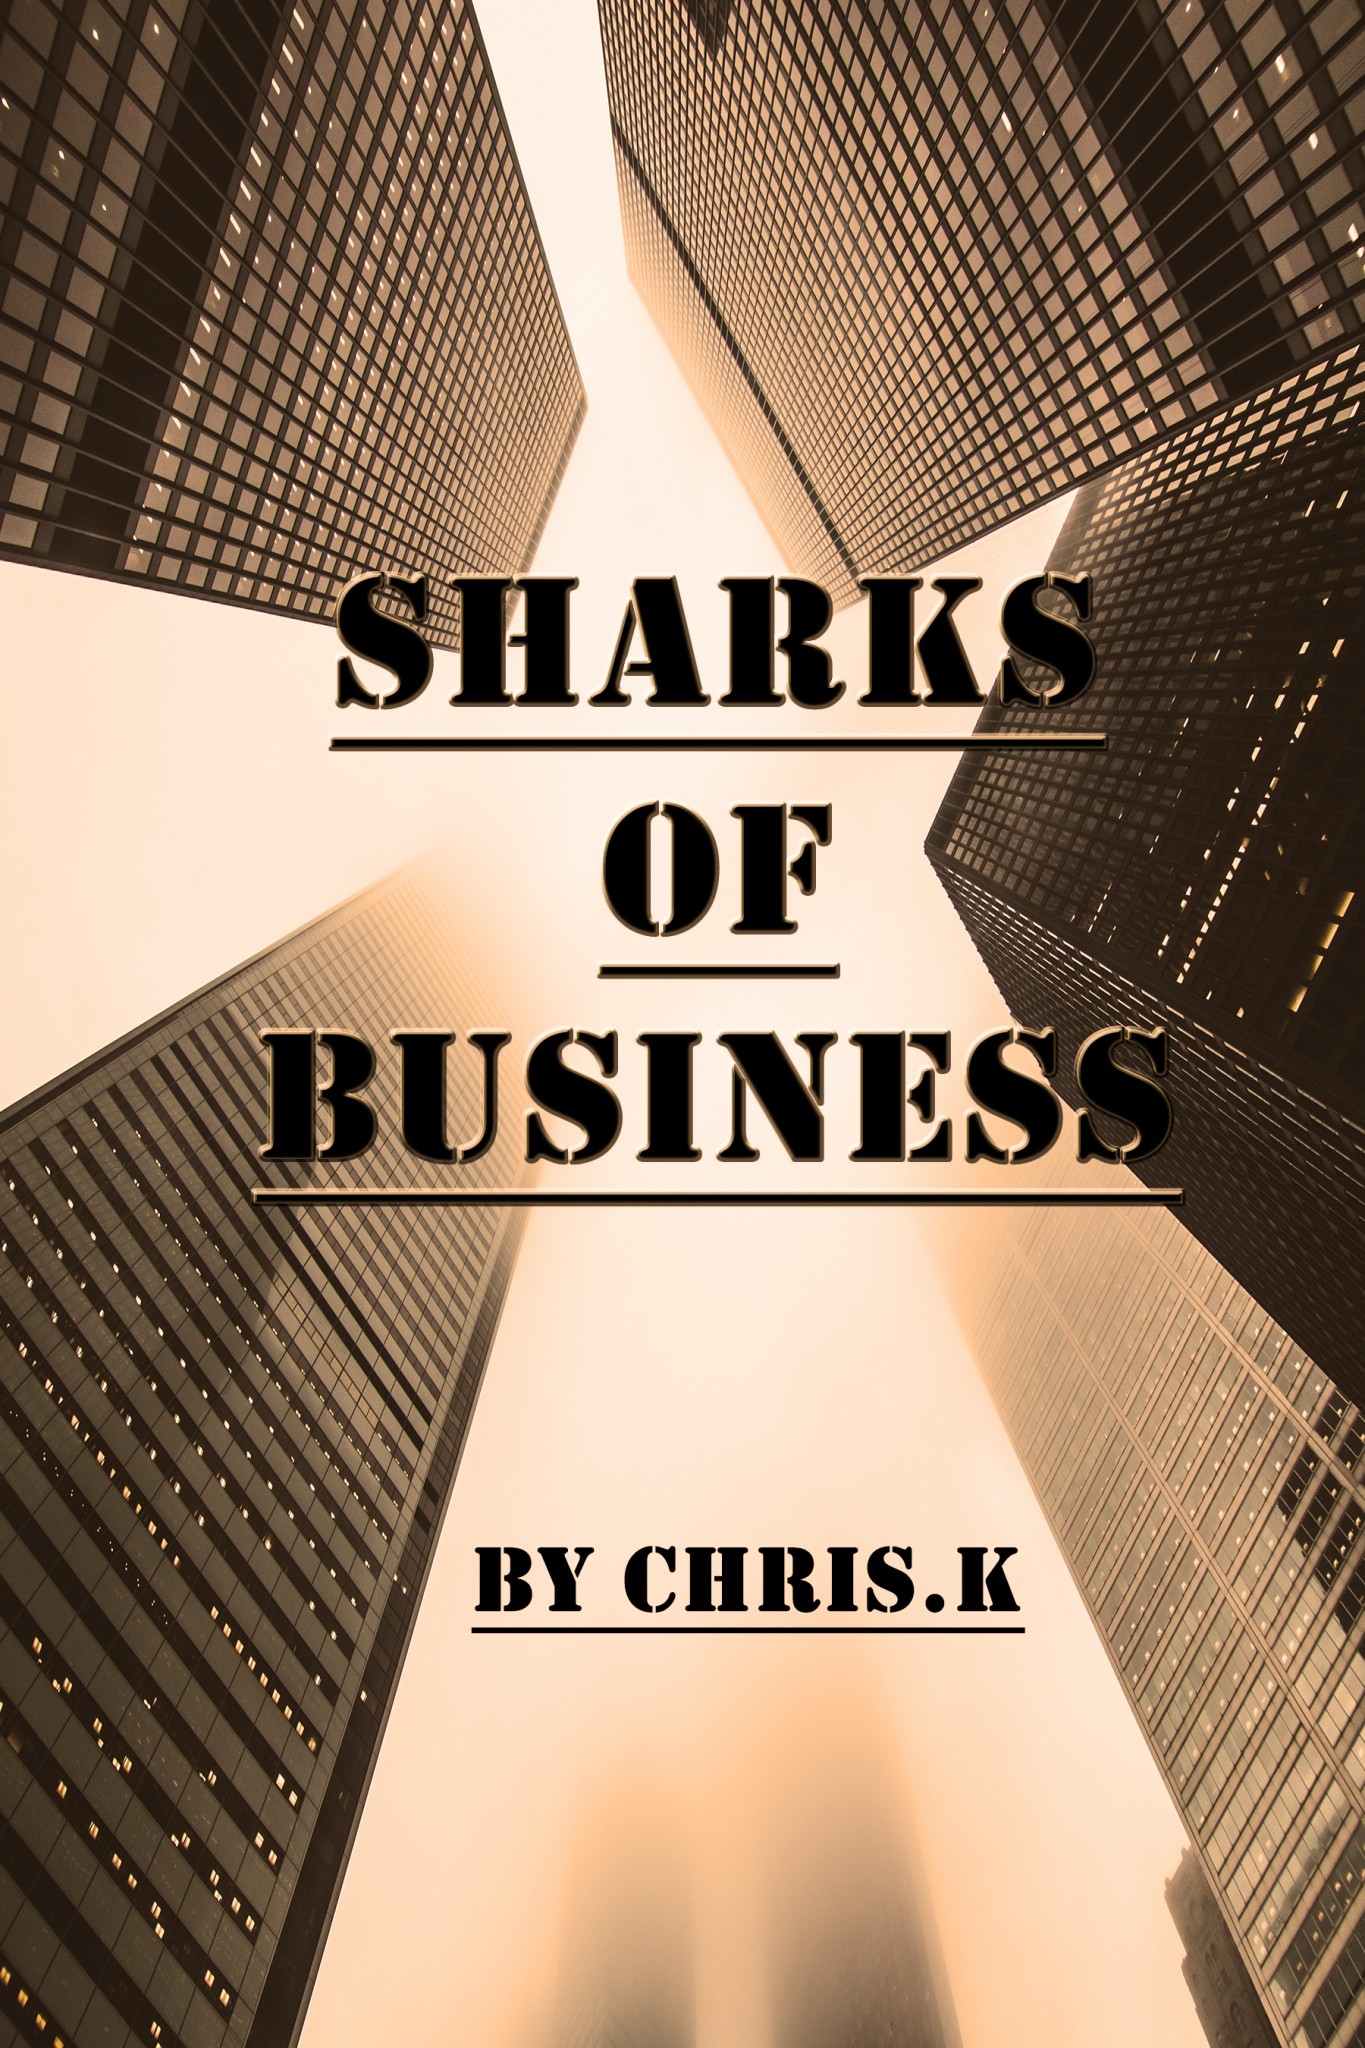 Business Book Cover Name : Sharks of business the book cover designer